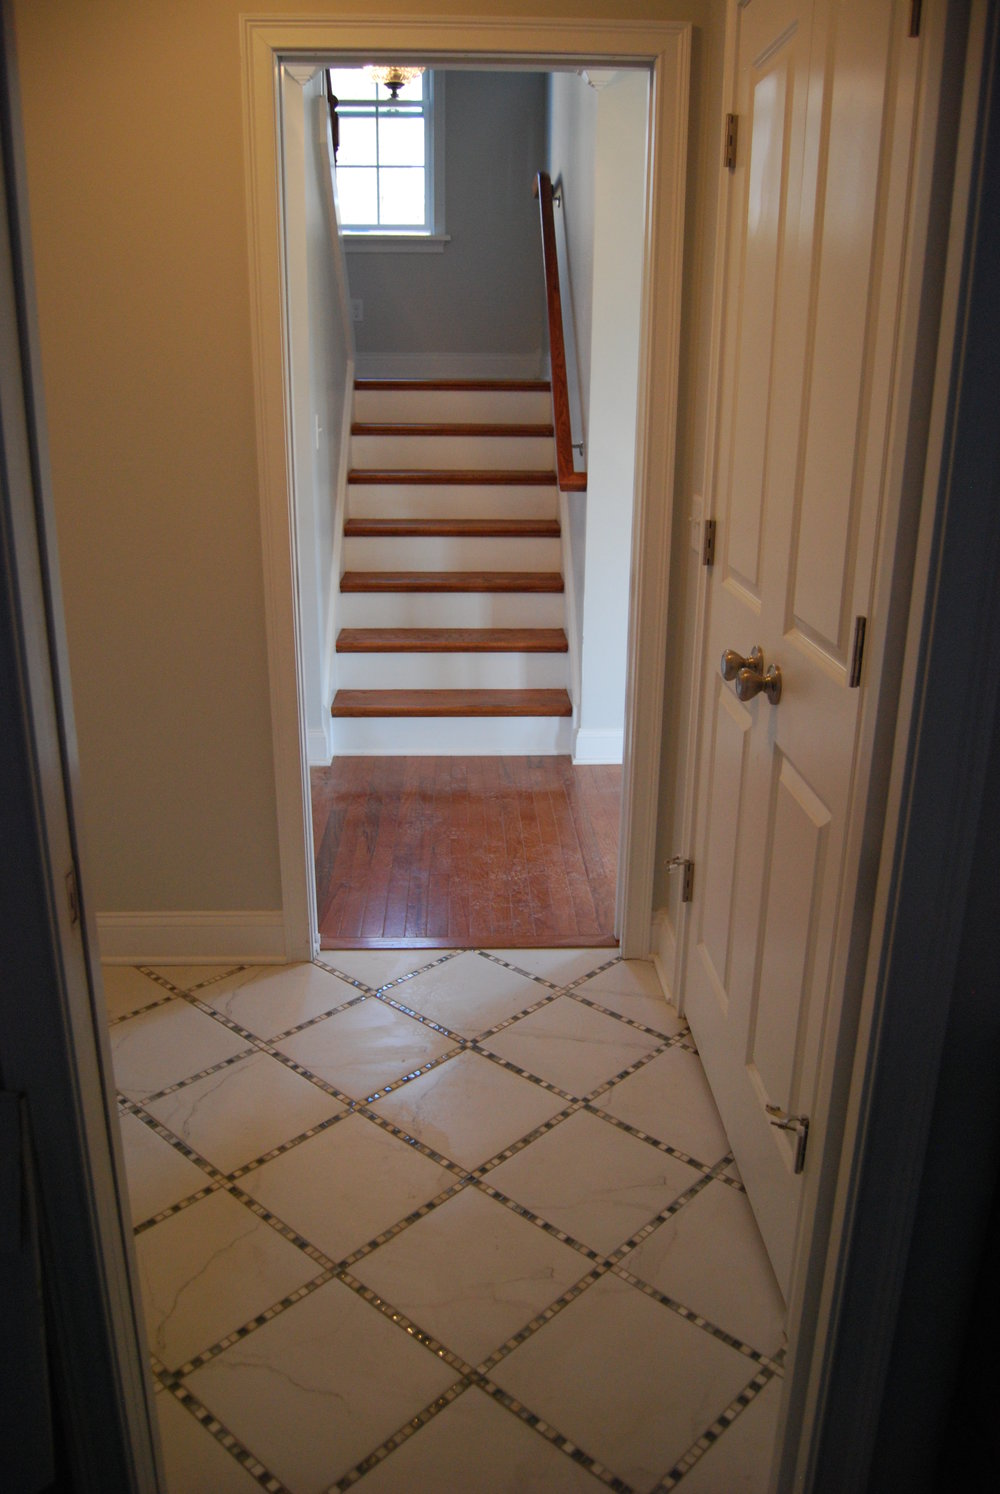 Bathroom Floor & Stairs